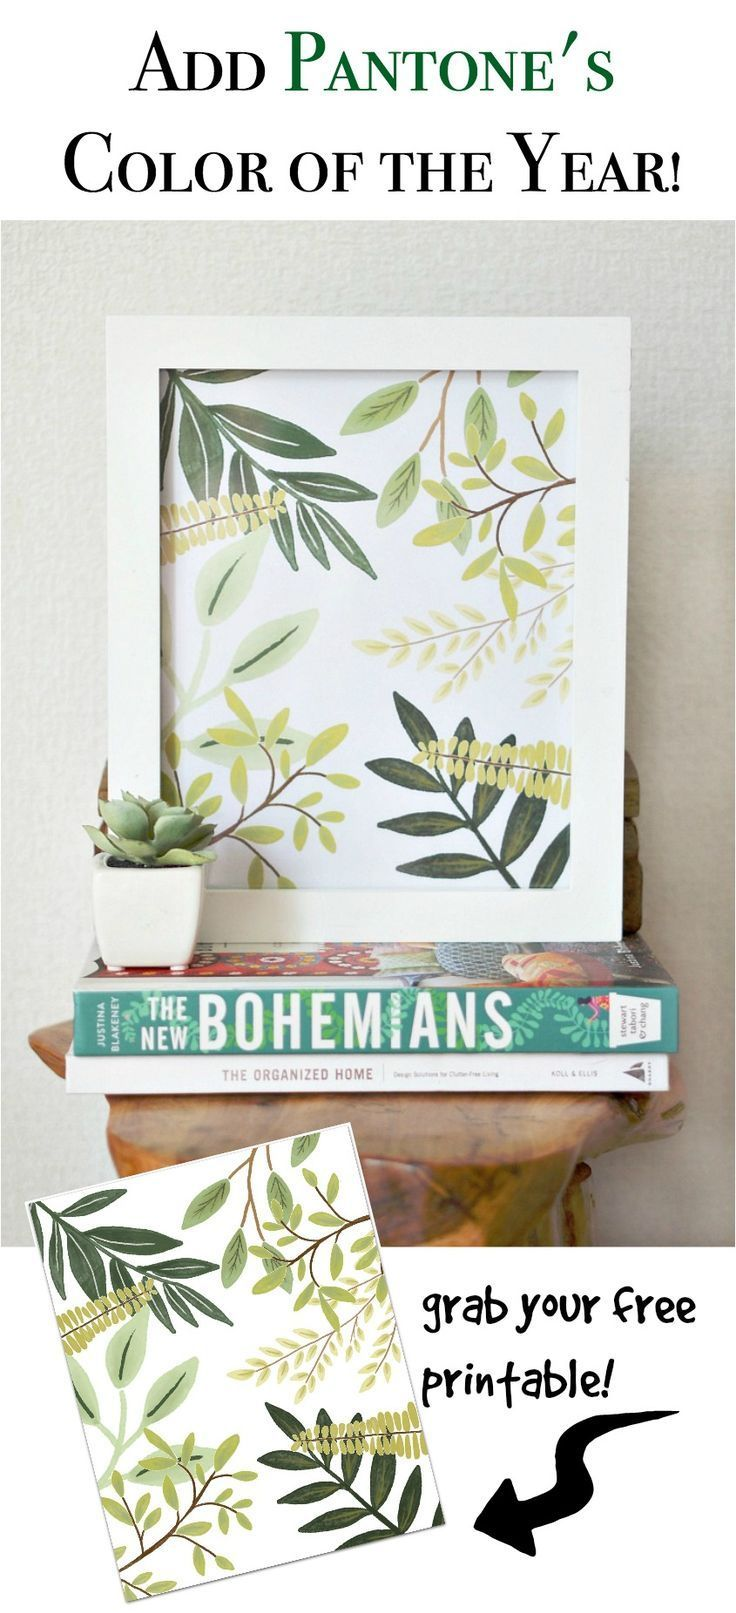 Add pantone's color of the year with a free greenery printable!